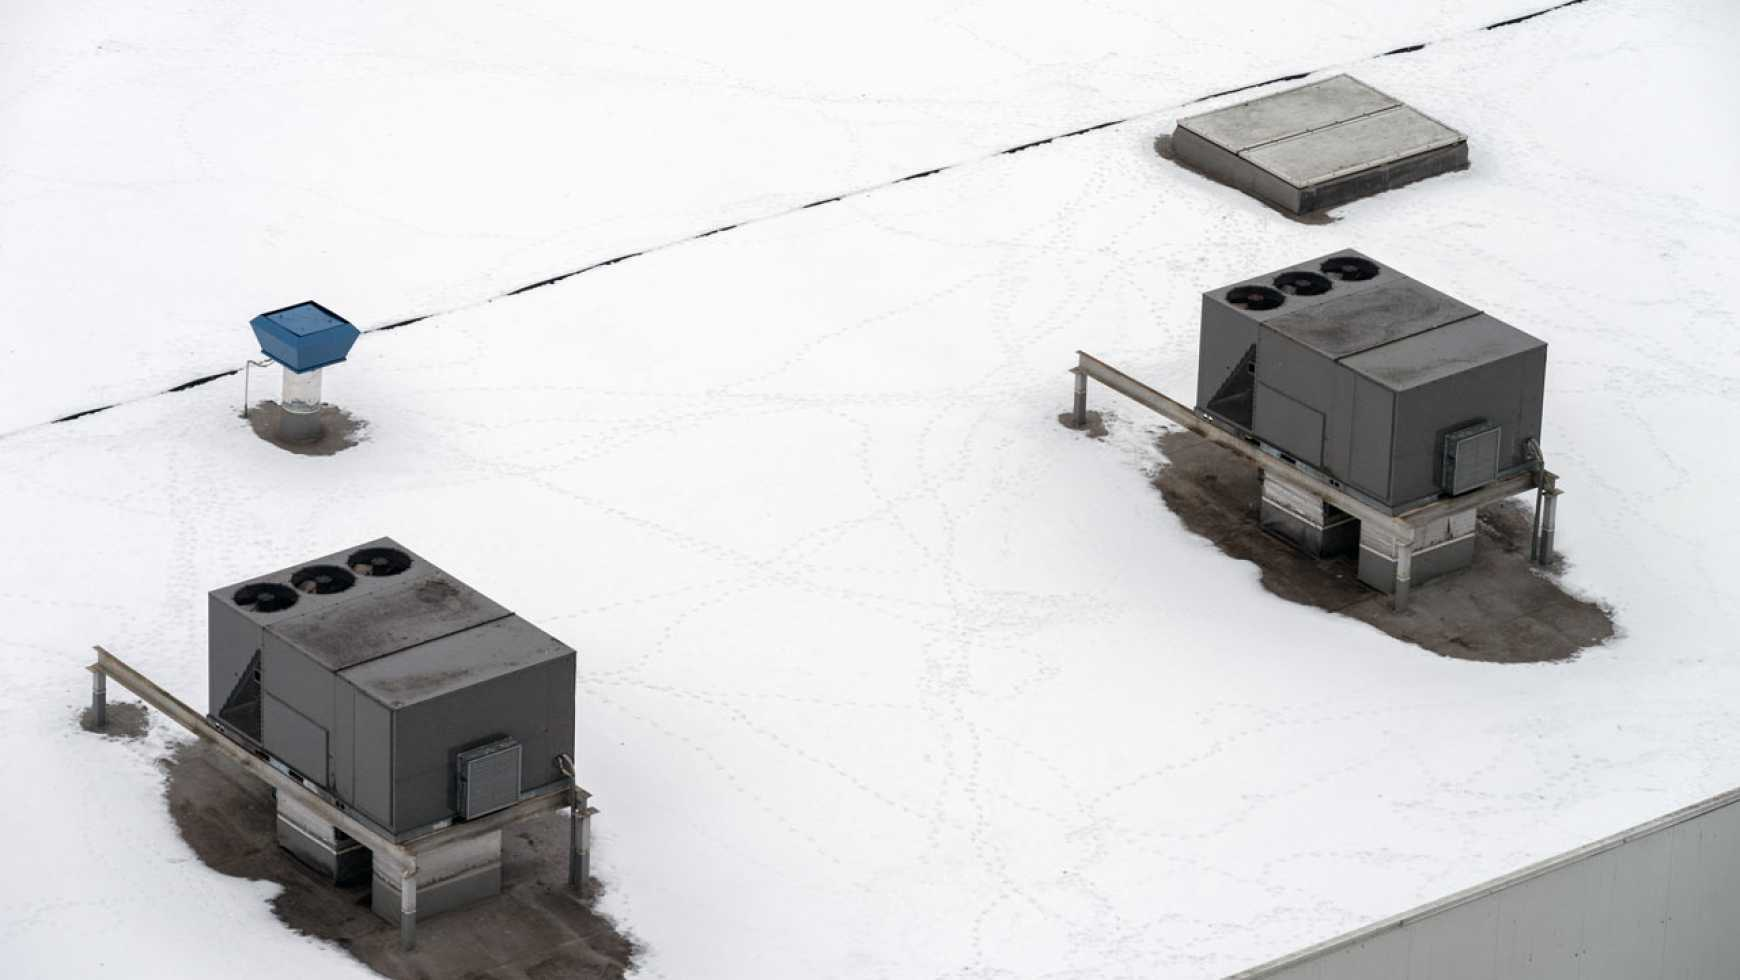 How to Safely Remove Snow from a Commercial Flat Roof